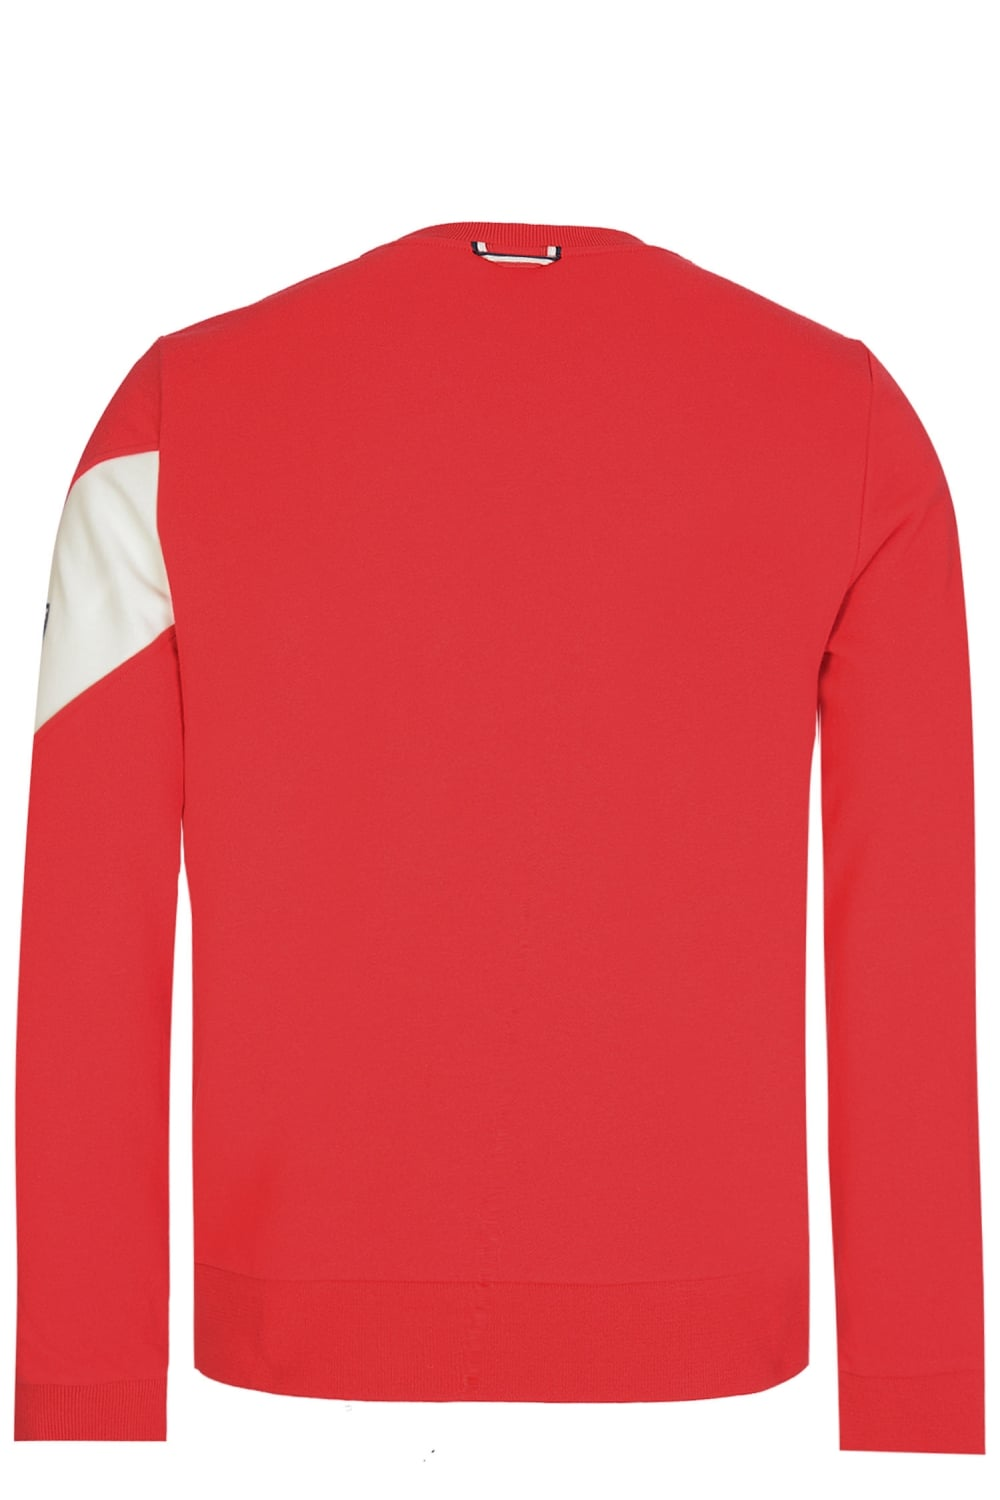 red moncler sweatshirt